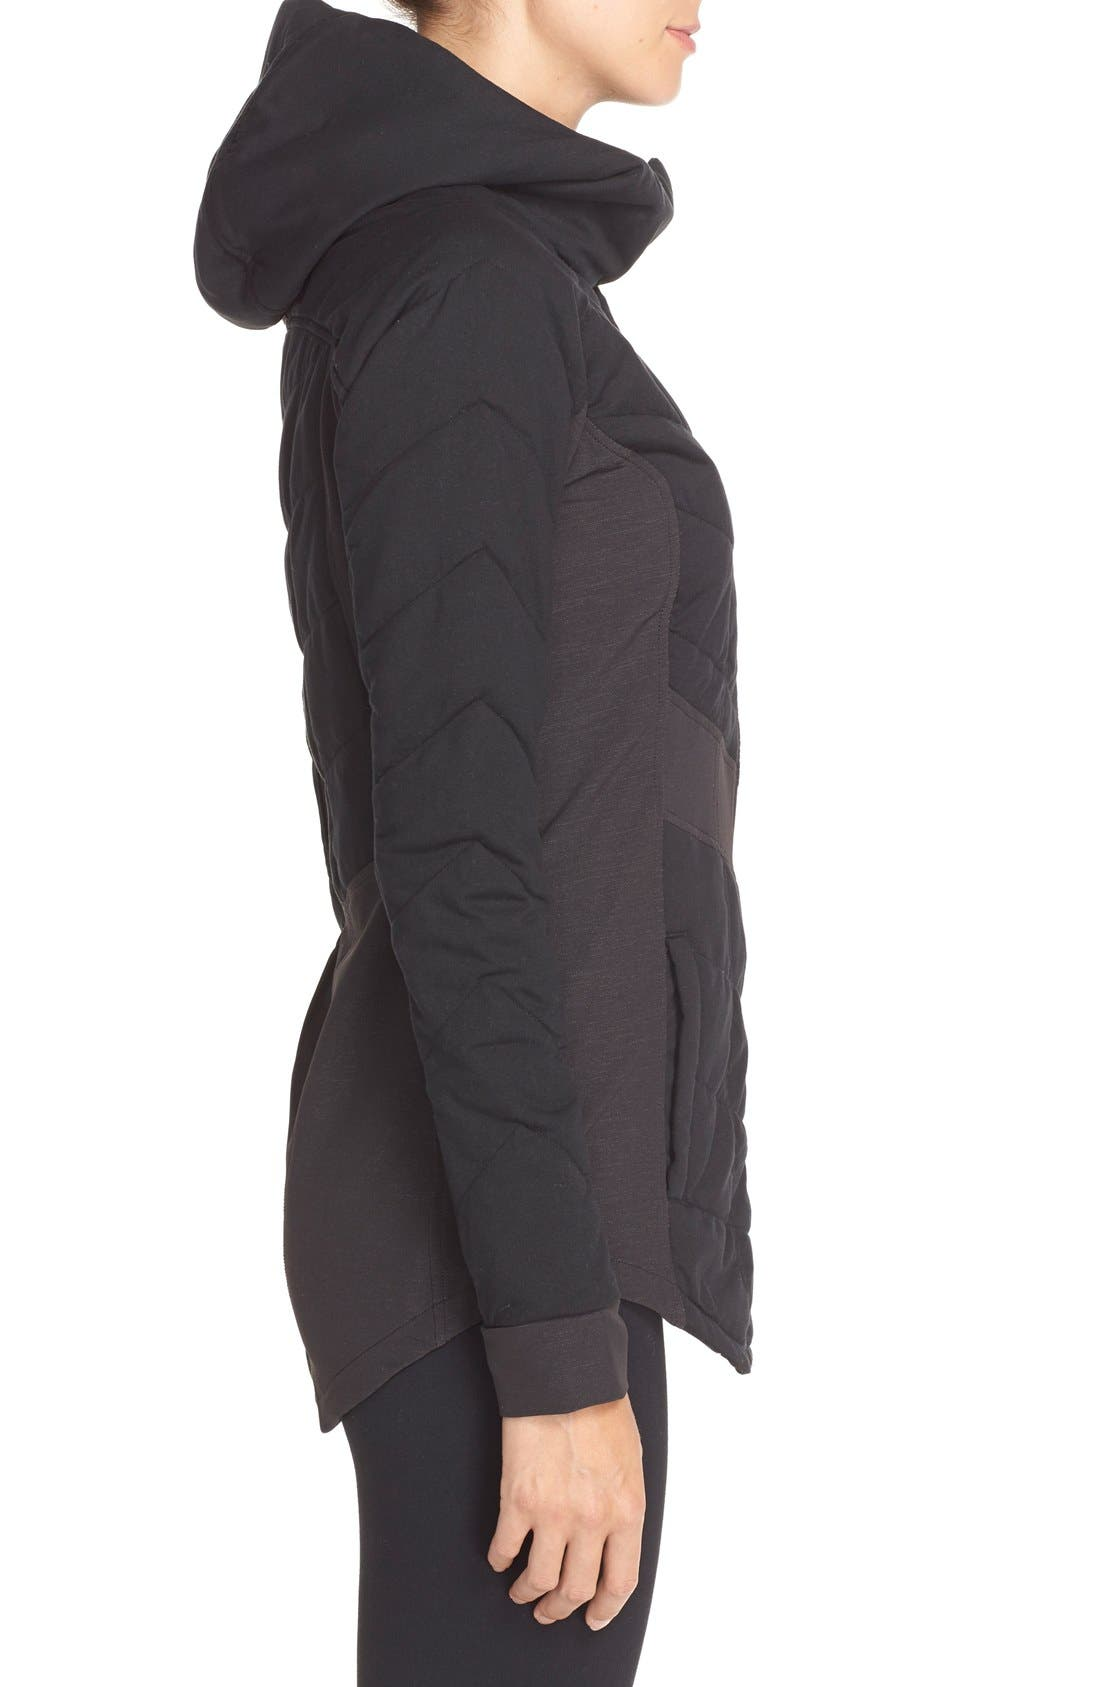 THE NORTH FACE,                             'Pseudio' Hooded Jacket,                             Alternate thumbnail 4, color,                             001